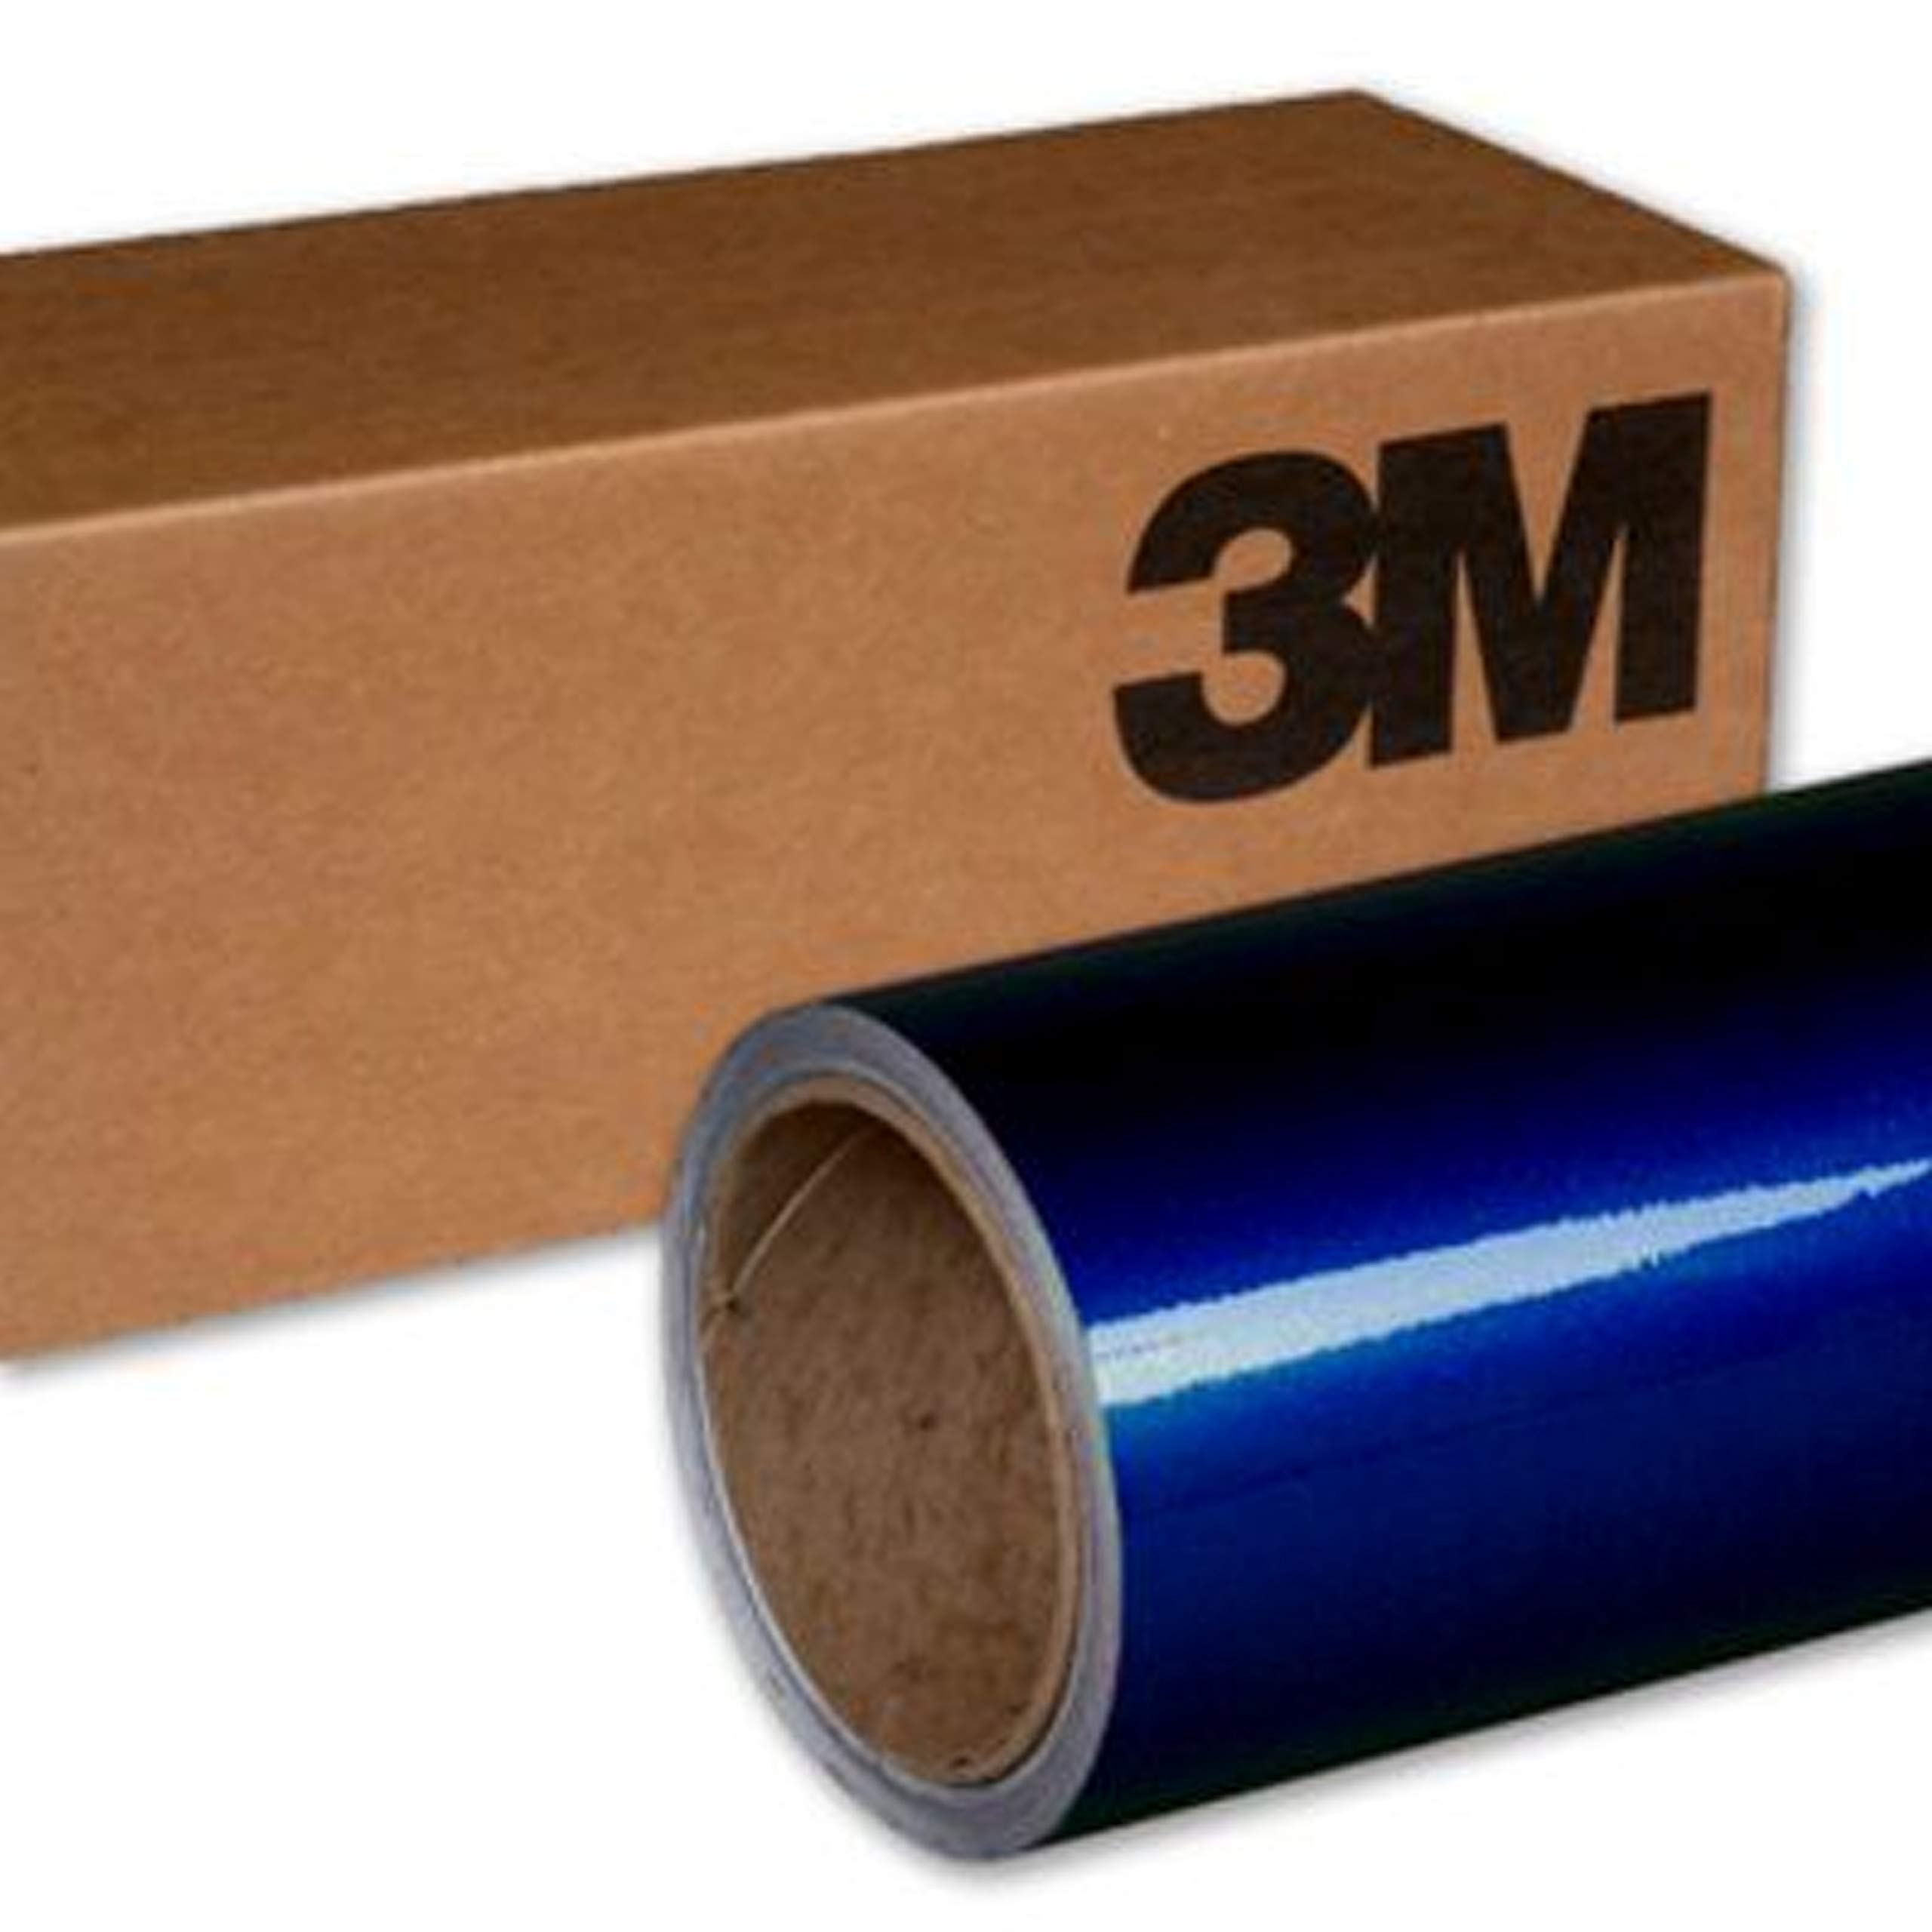 3M 1080 G217 GLOSS DEEP BLUE METALLIC 3in x 5in (SAMPLE SIZE) Car Wrap Vinyl Film by 3M (Image #1)